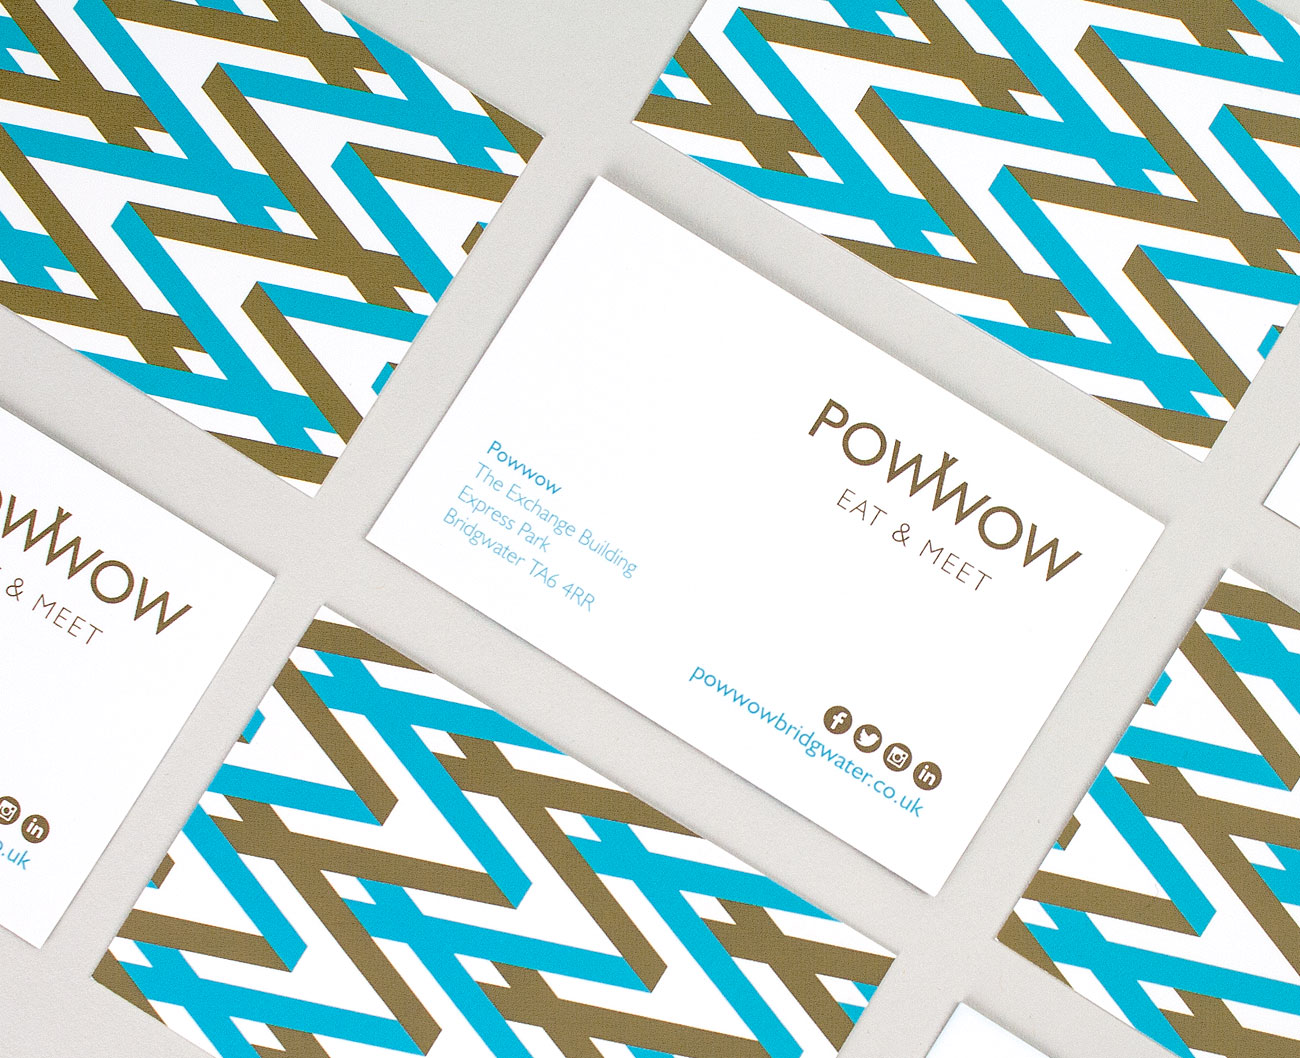 Powwow business cards